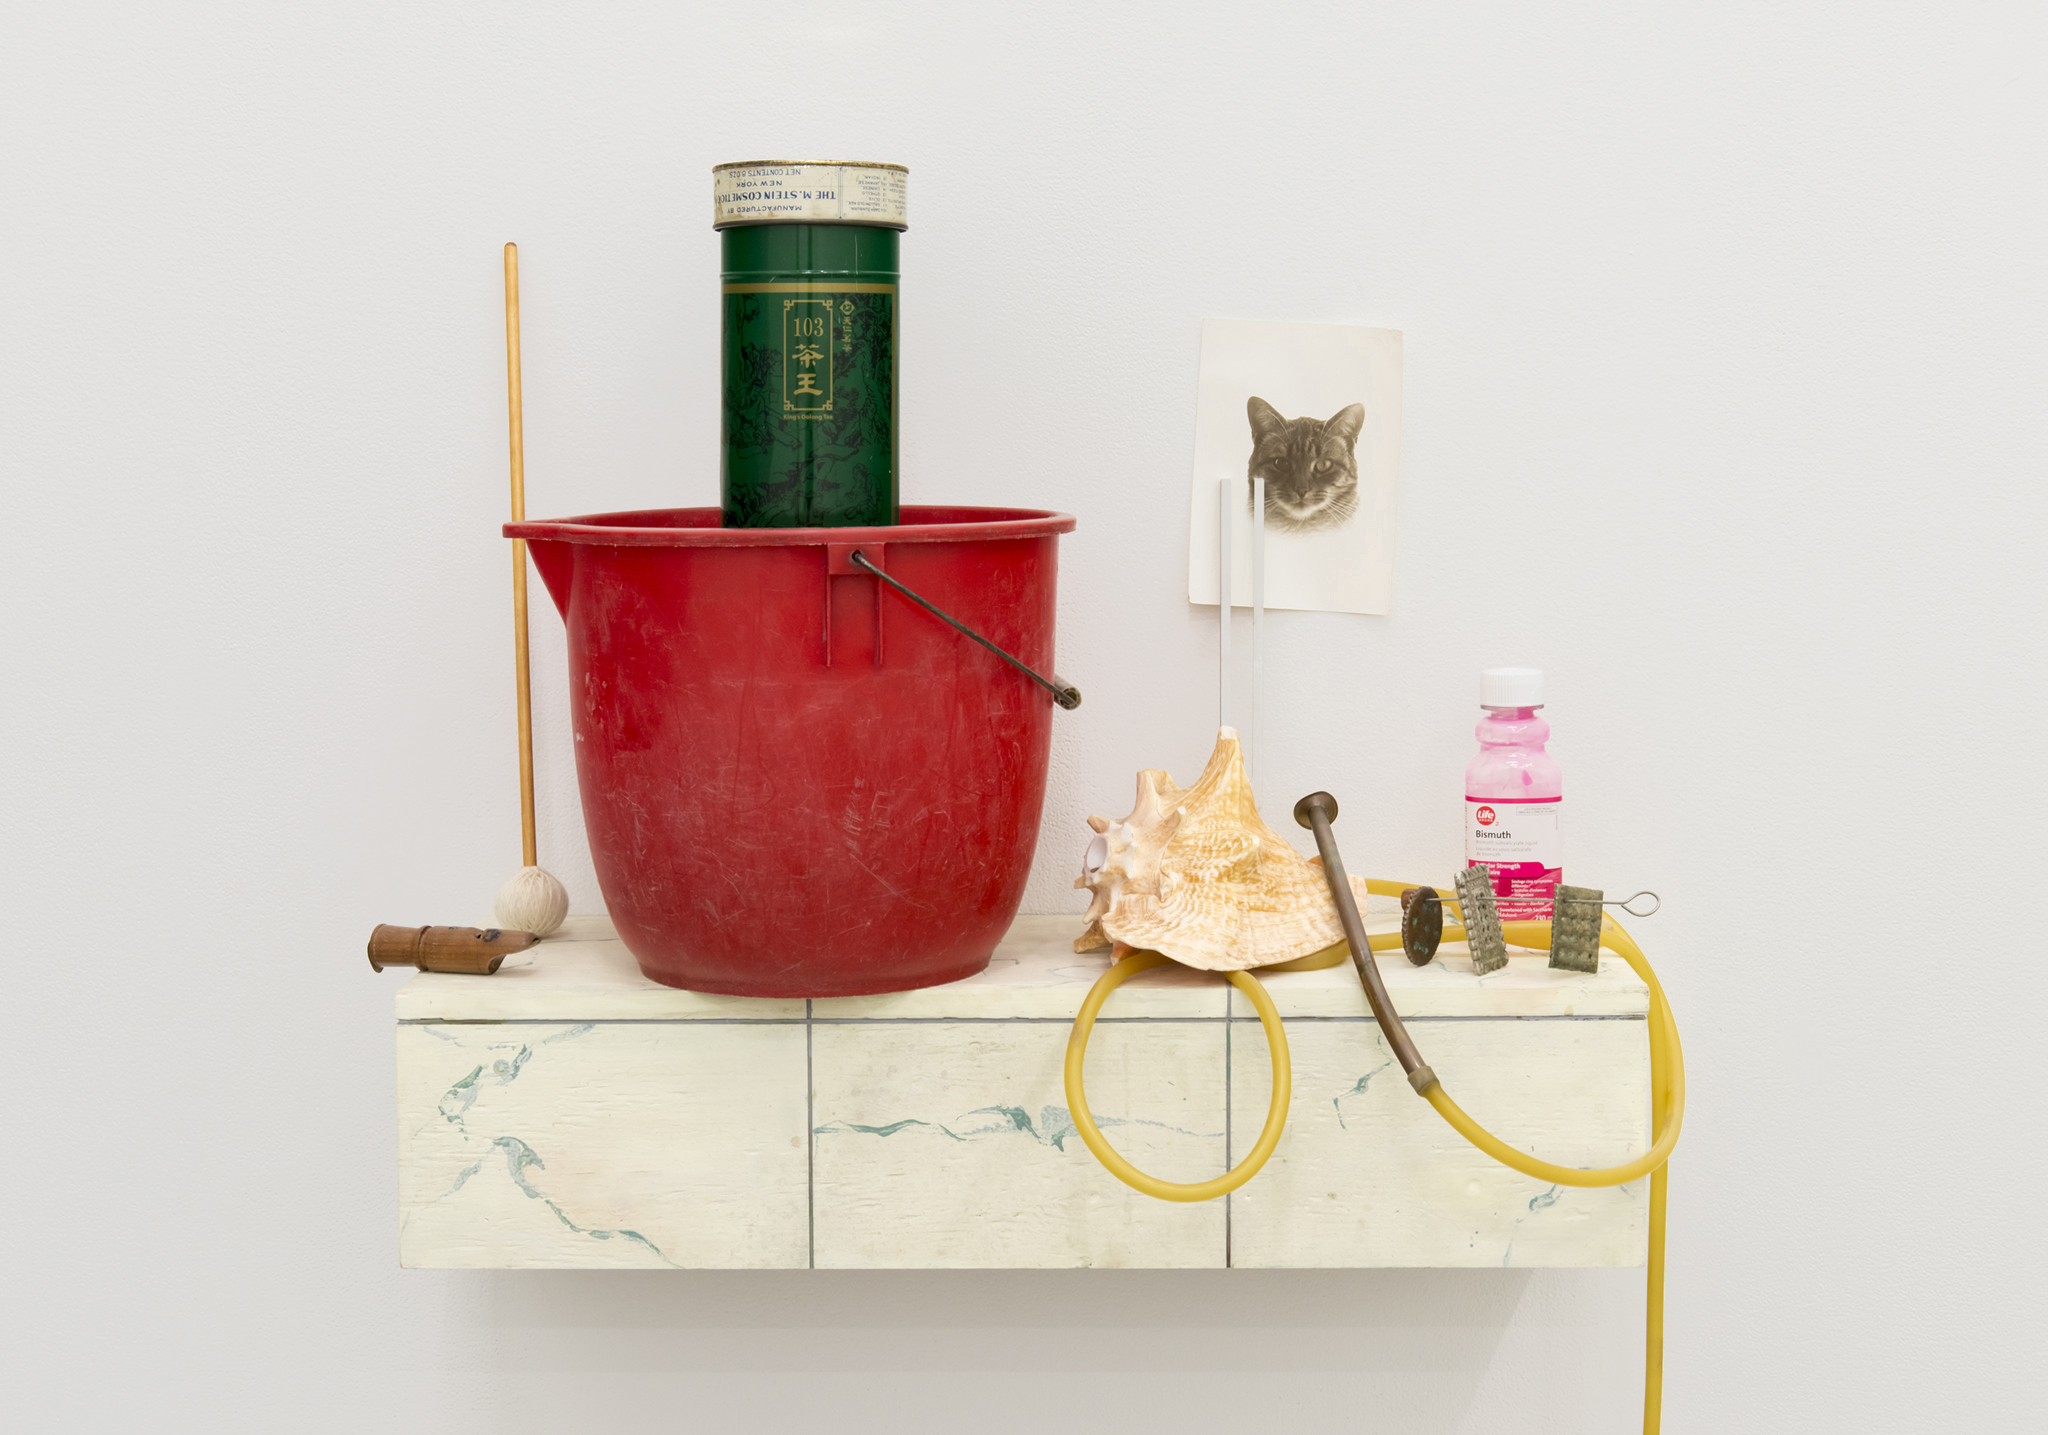 Ashes Withyman, Cetus, River, Furnas, Musca, Compass, Altar, Cup, 2017–2018, mixed media, 44 x 28 x 13 in. (112 x 71 x 33 cm)​ by